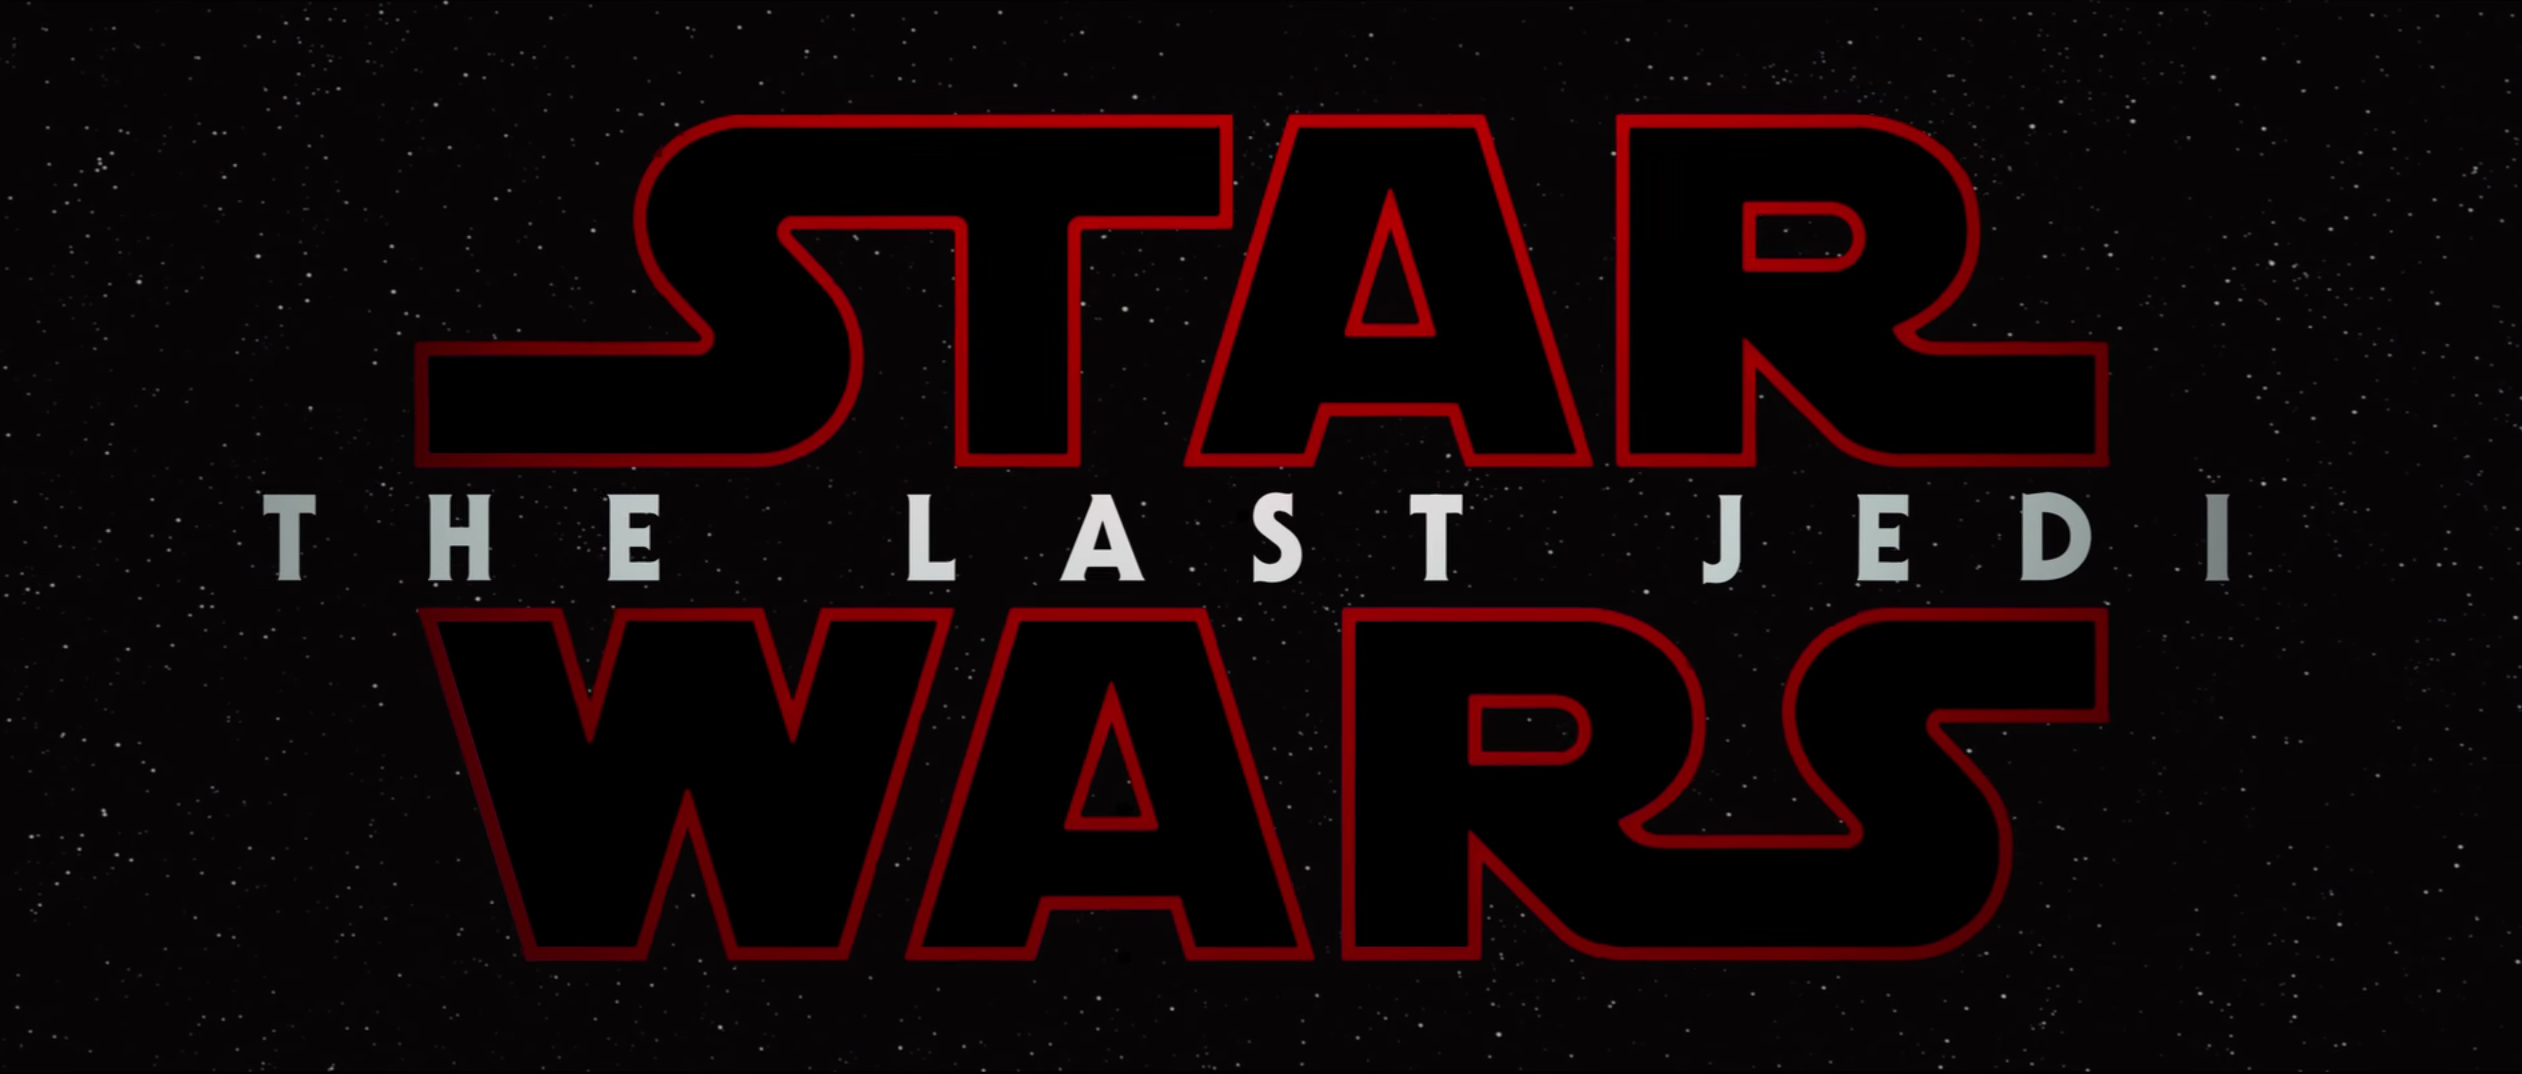 The first trailer for 'Star Wars: The Last Jedi' is finally here!